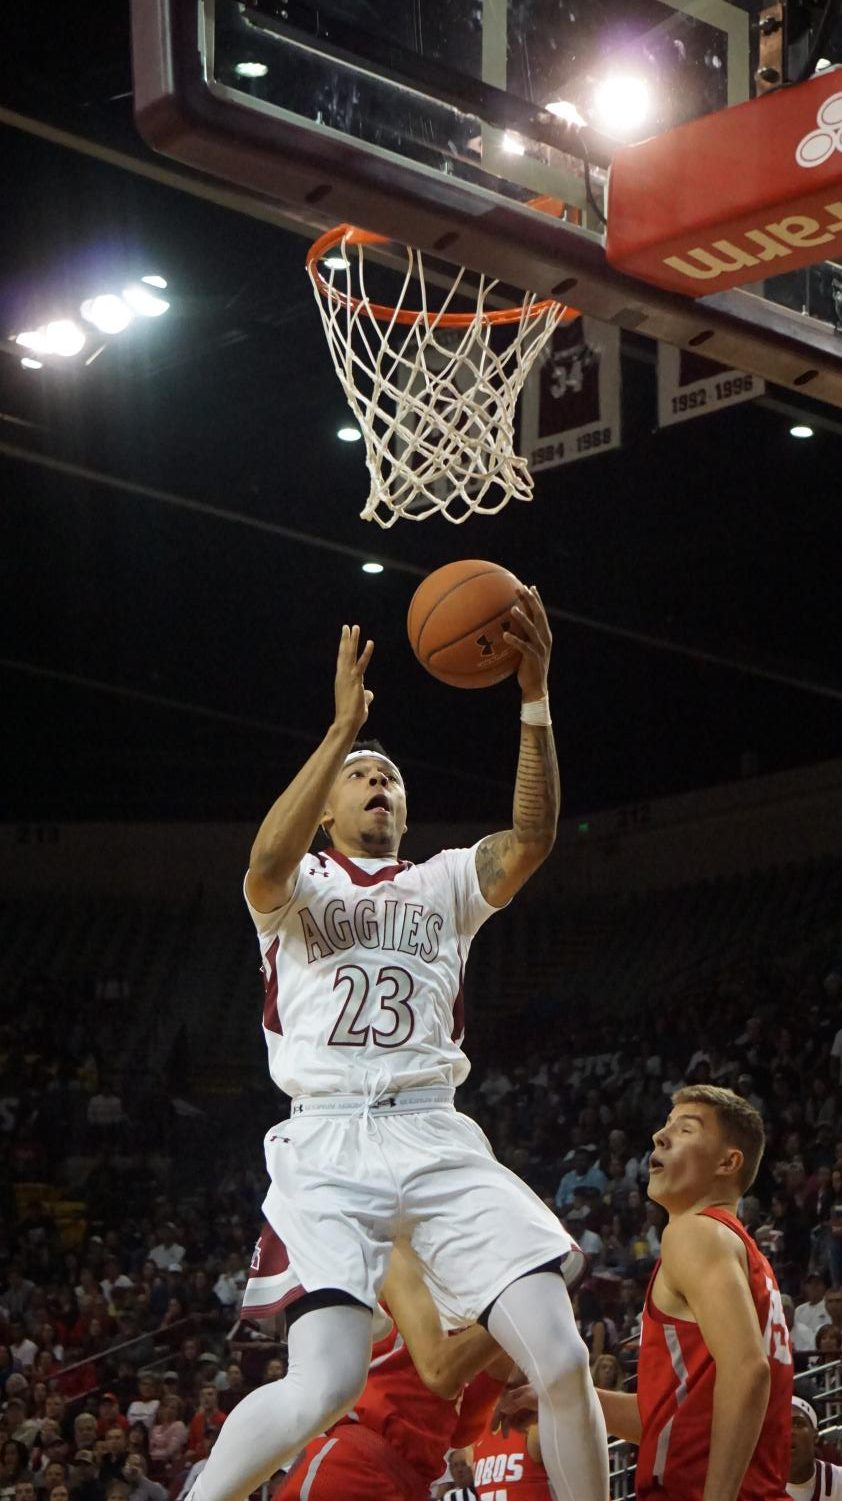 Zach Lofton led NMSU to a win over No. 6 Miami.